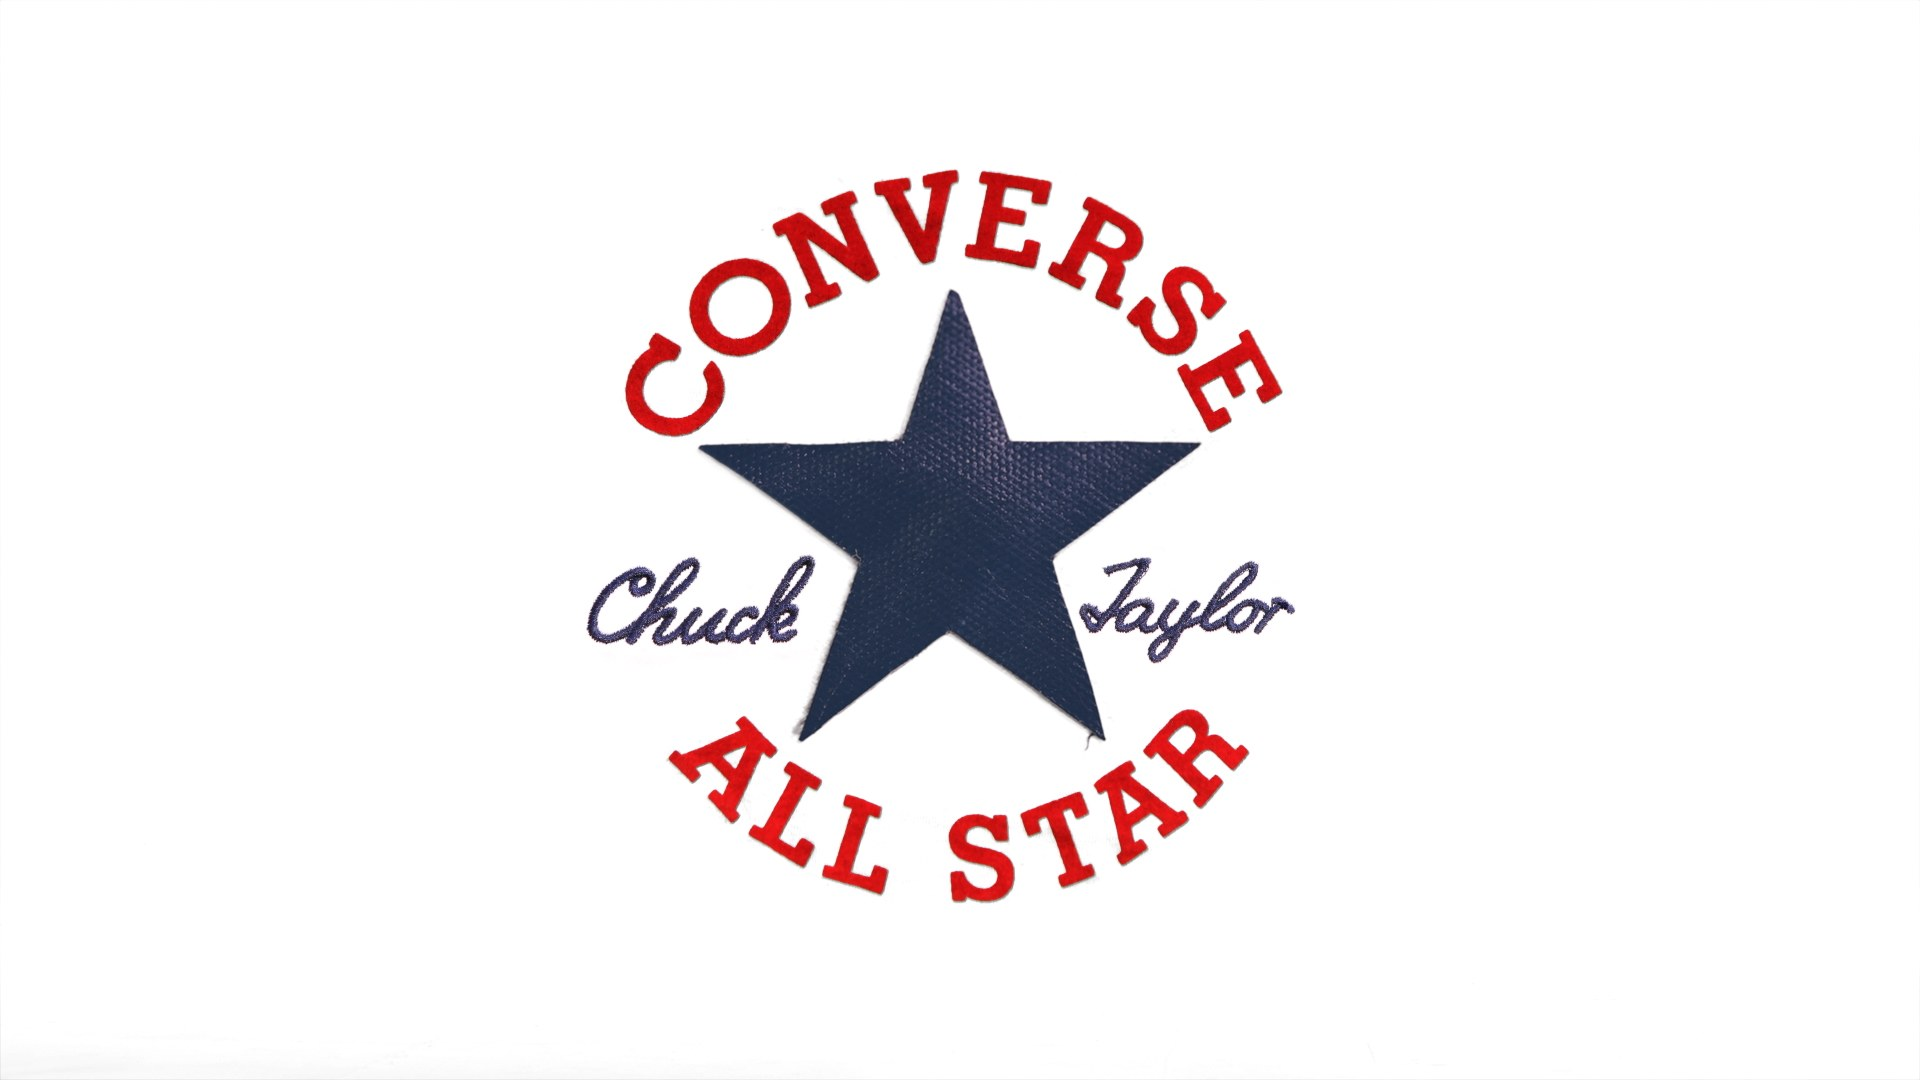 Converse All Star Chuck Taylor – Un brand mereu actual